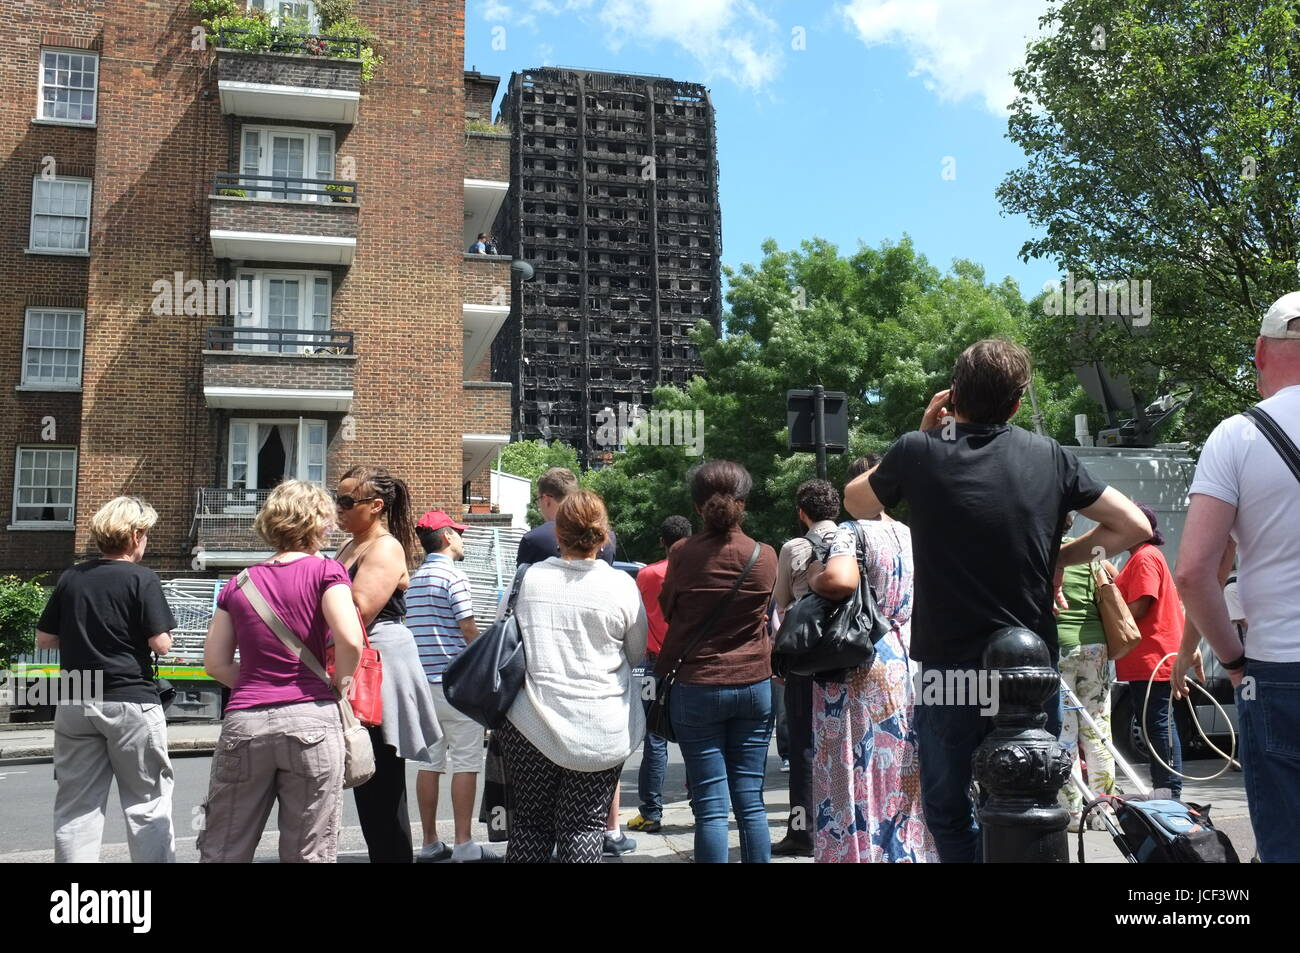 Notting Hill, Kensington, UK. 15th Jun, 2017. The site of the Grenfell Tower fire disaster at around 2.30pm on Thursday, - Stock Image